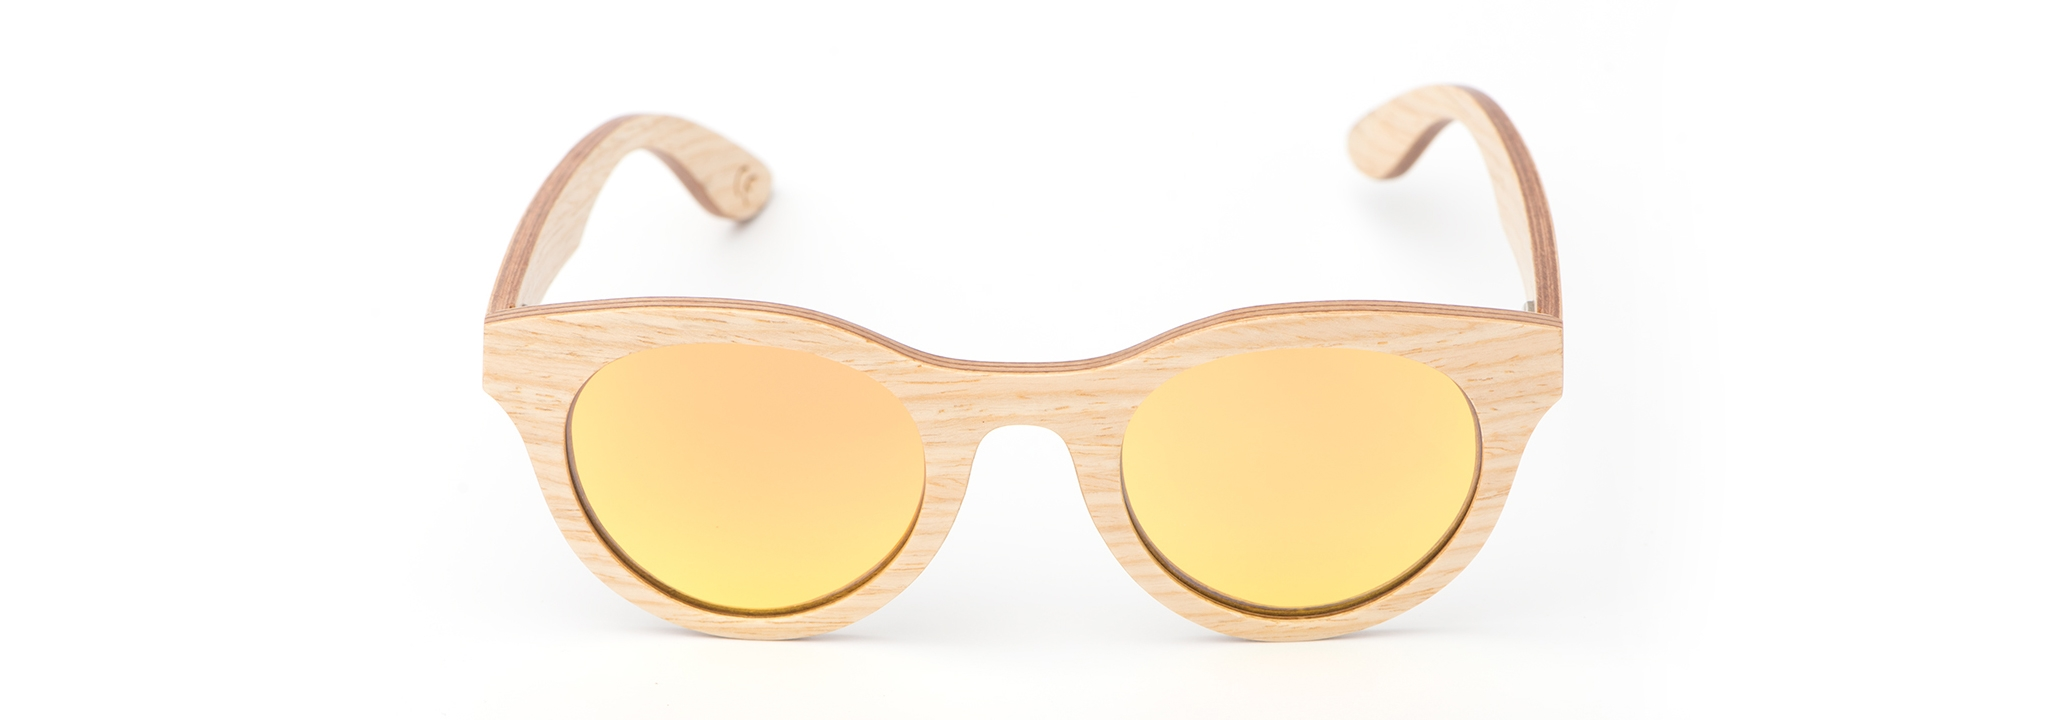 California Wood Glasses